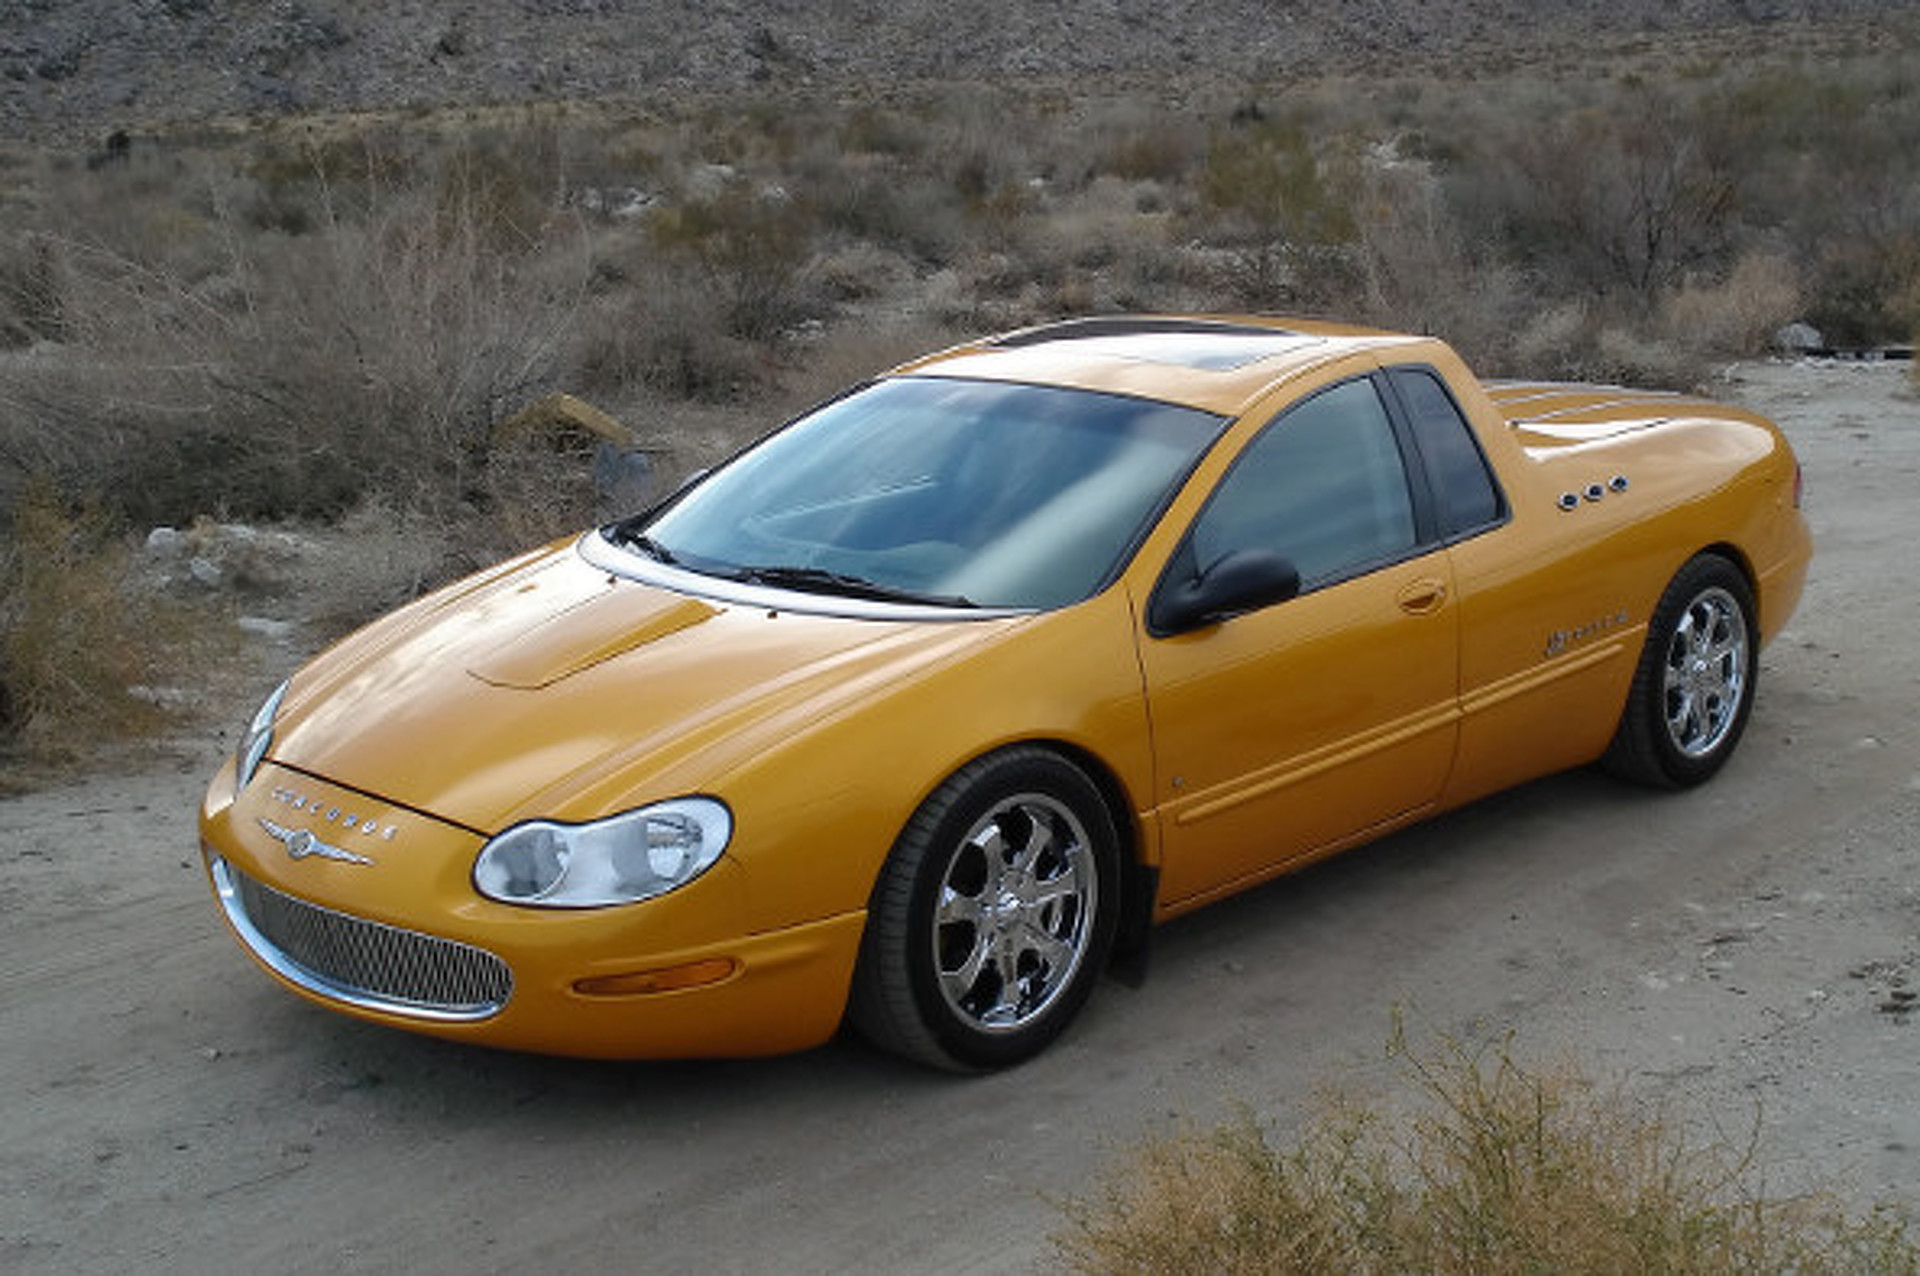 Odd Ride: Looking Back on the 2007 DiMora XJ Coupe Concept